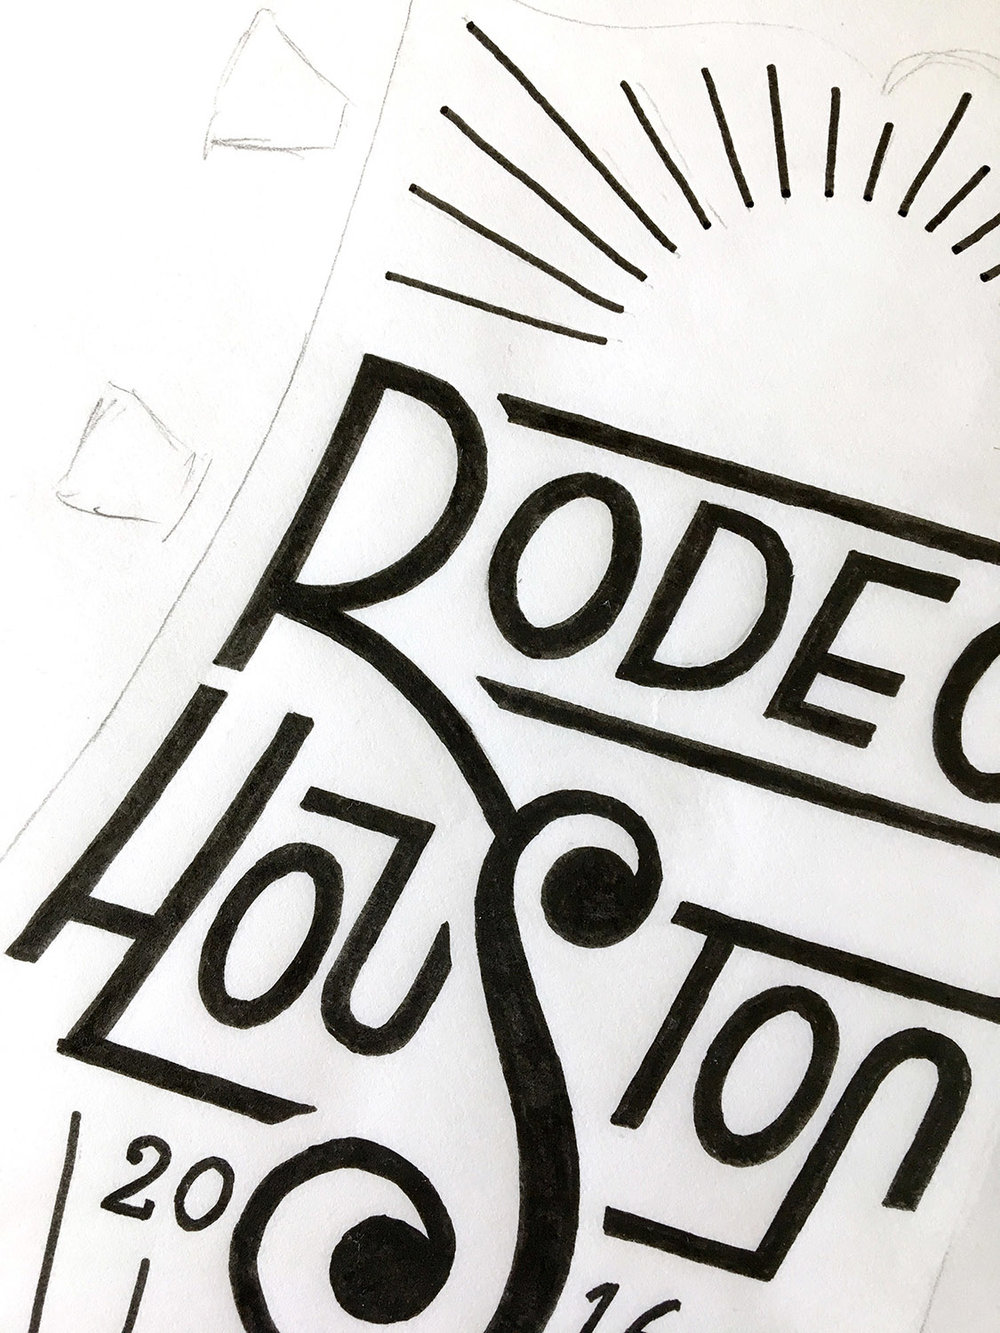 RodeoHouston_Sketch.jpg